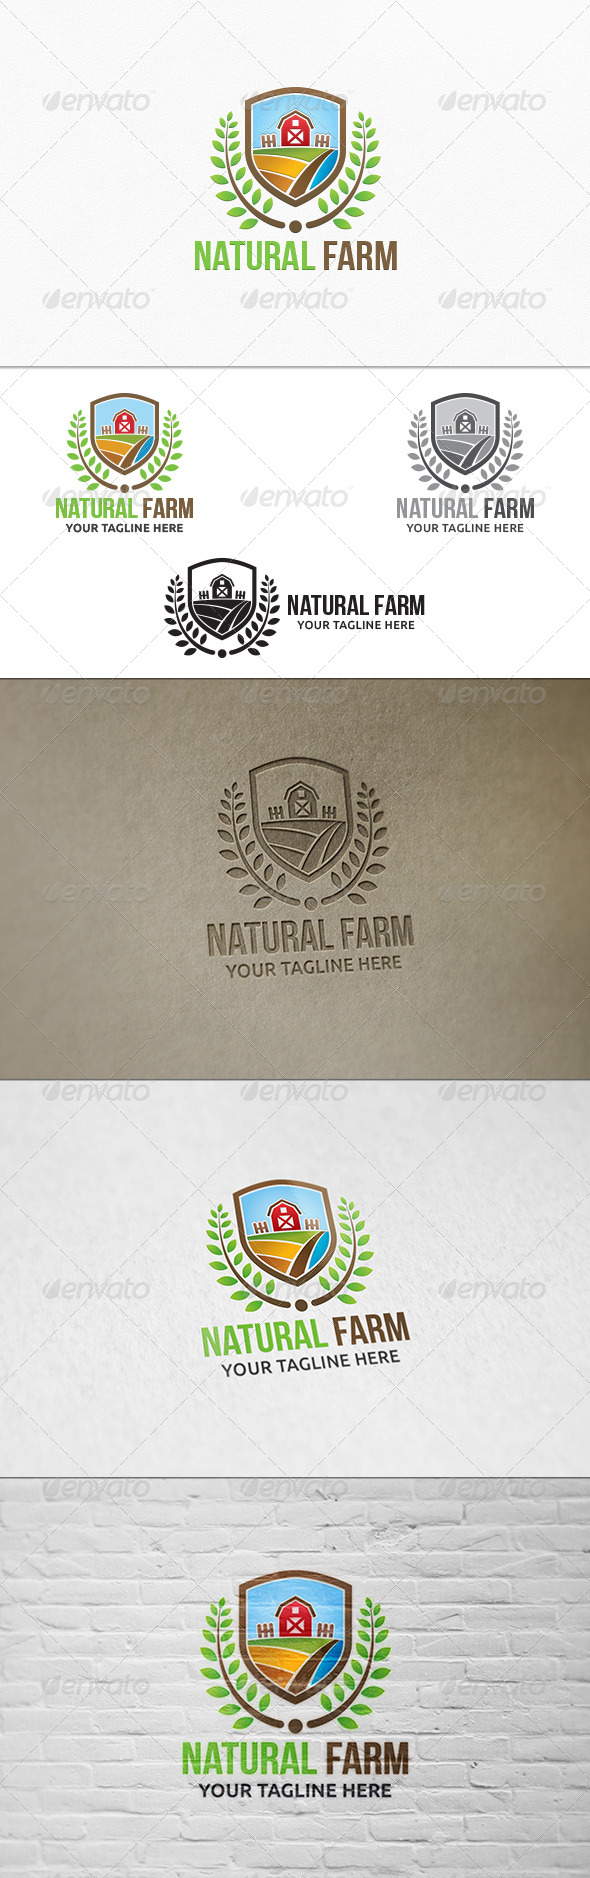 GraphicRiver Natural Farm Logo Template 8102228